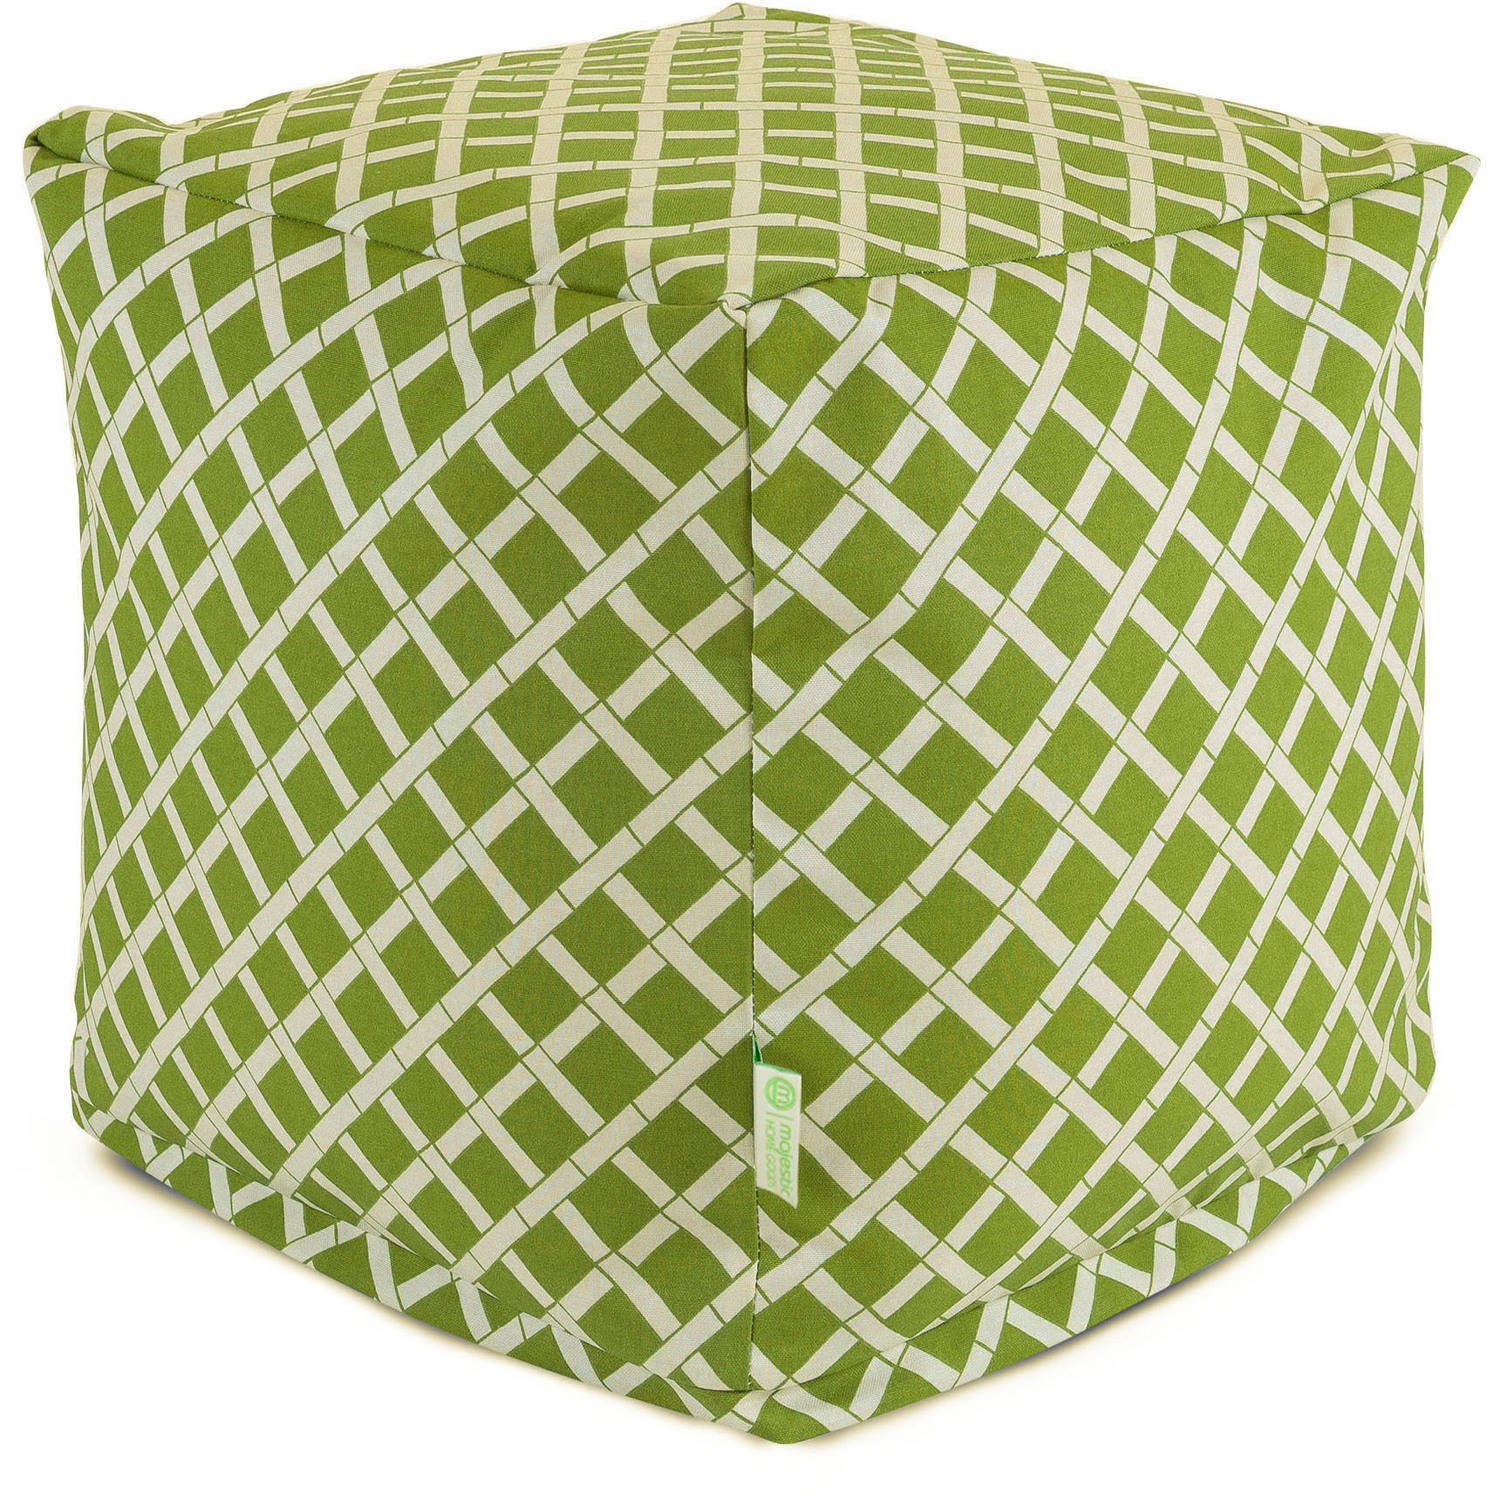 Majestic Home Goods Bamboo Bean Bag Cube, Indoor/Outdoor